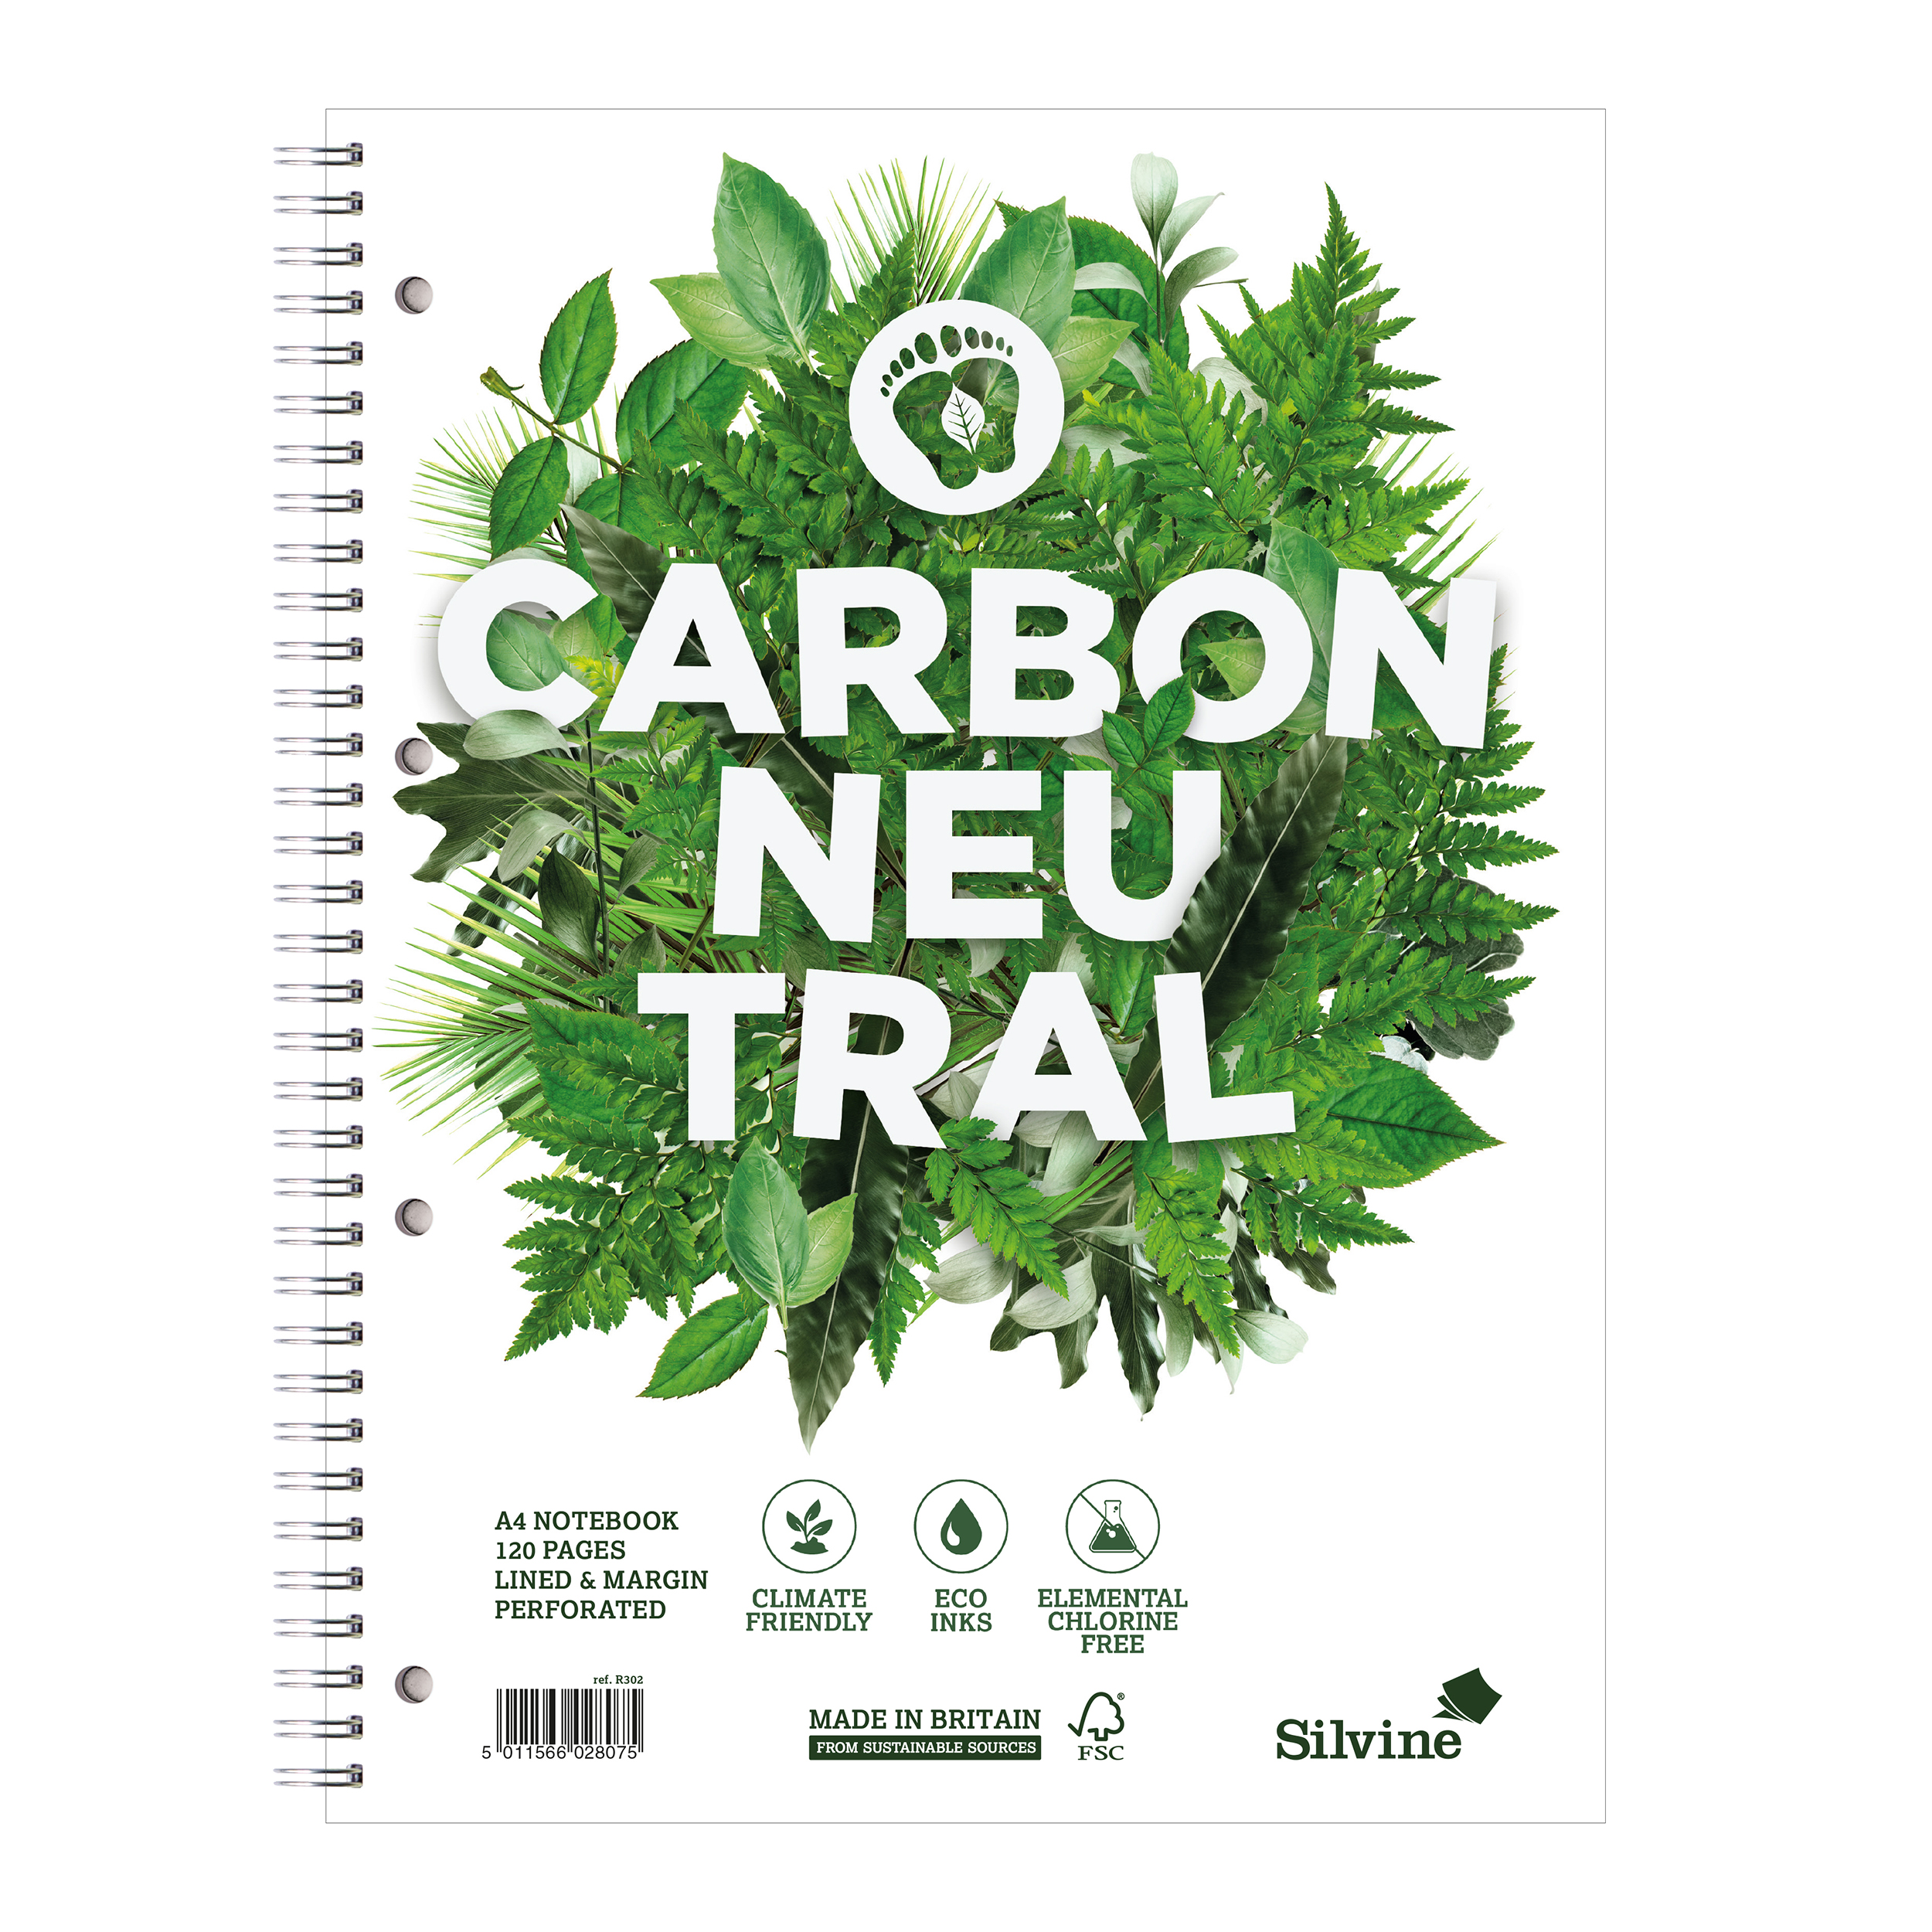 Paper pads or notebooks Silvine Notebook Carbon Ntral Wirebnd 80gsm Ruled Margin Perf Punched 4 Holes 120pp A4+ Ref R302 Pack 5